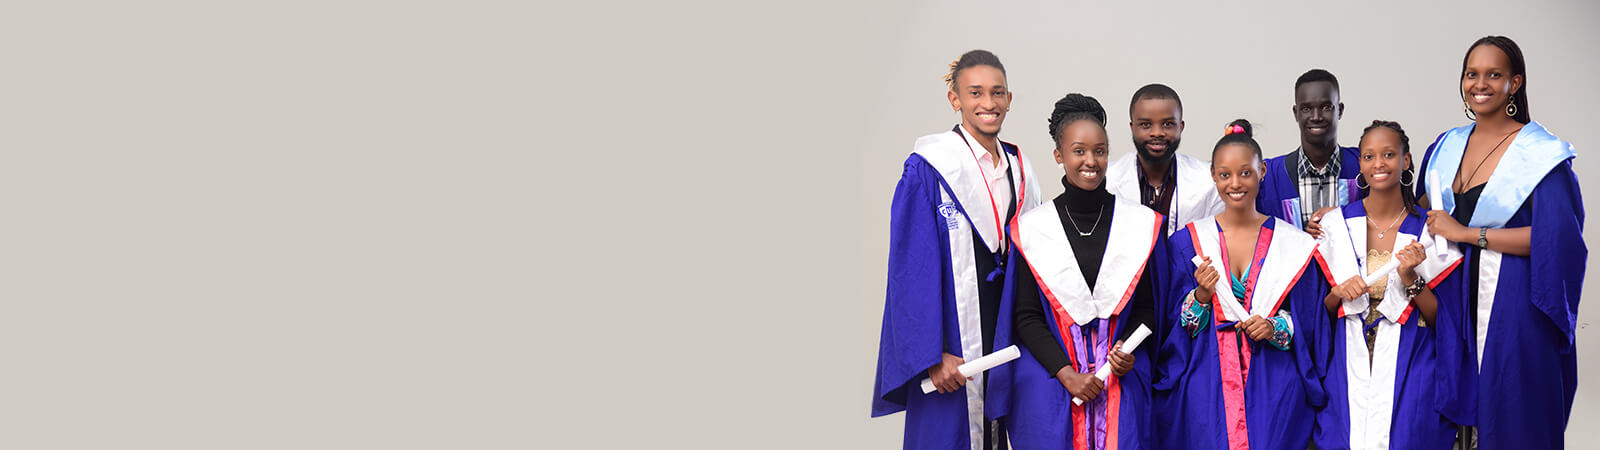 Cavendish University Uganda will hold its 10th Graduation in a Scientific & Virtual Ceremony to send off the Class of 2021 on 26th August 2021